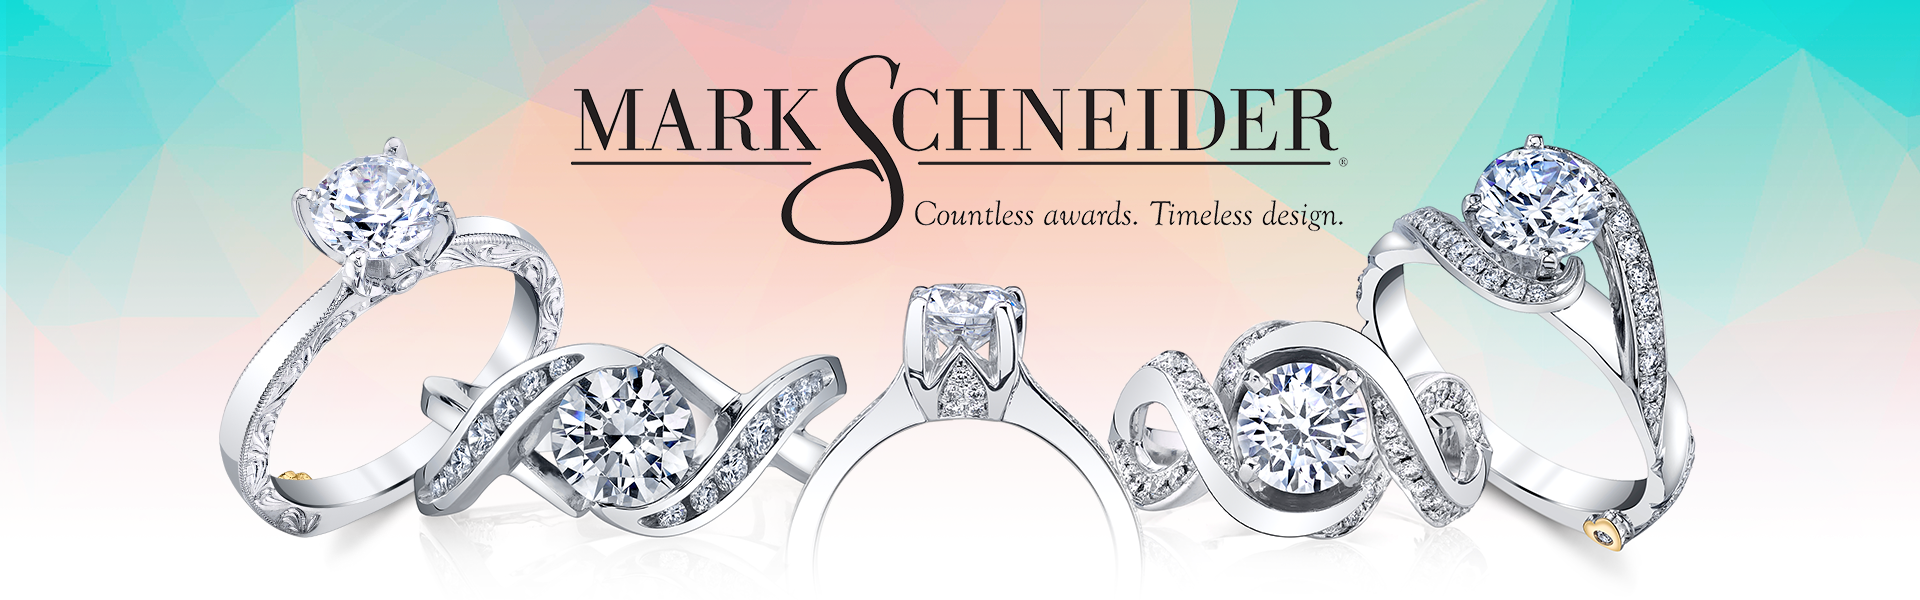 Mark Schneider Countless Awards. Timeless Design.